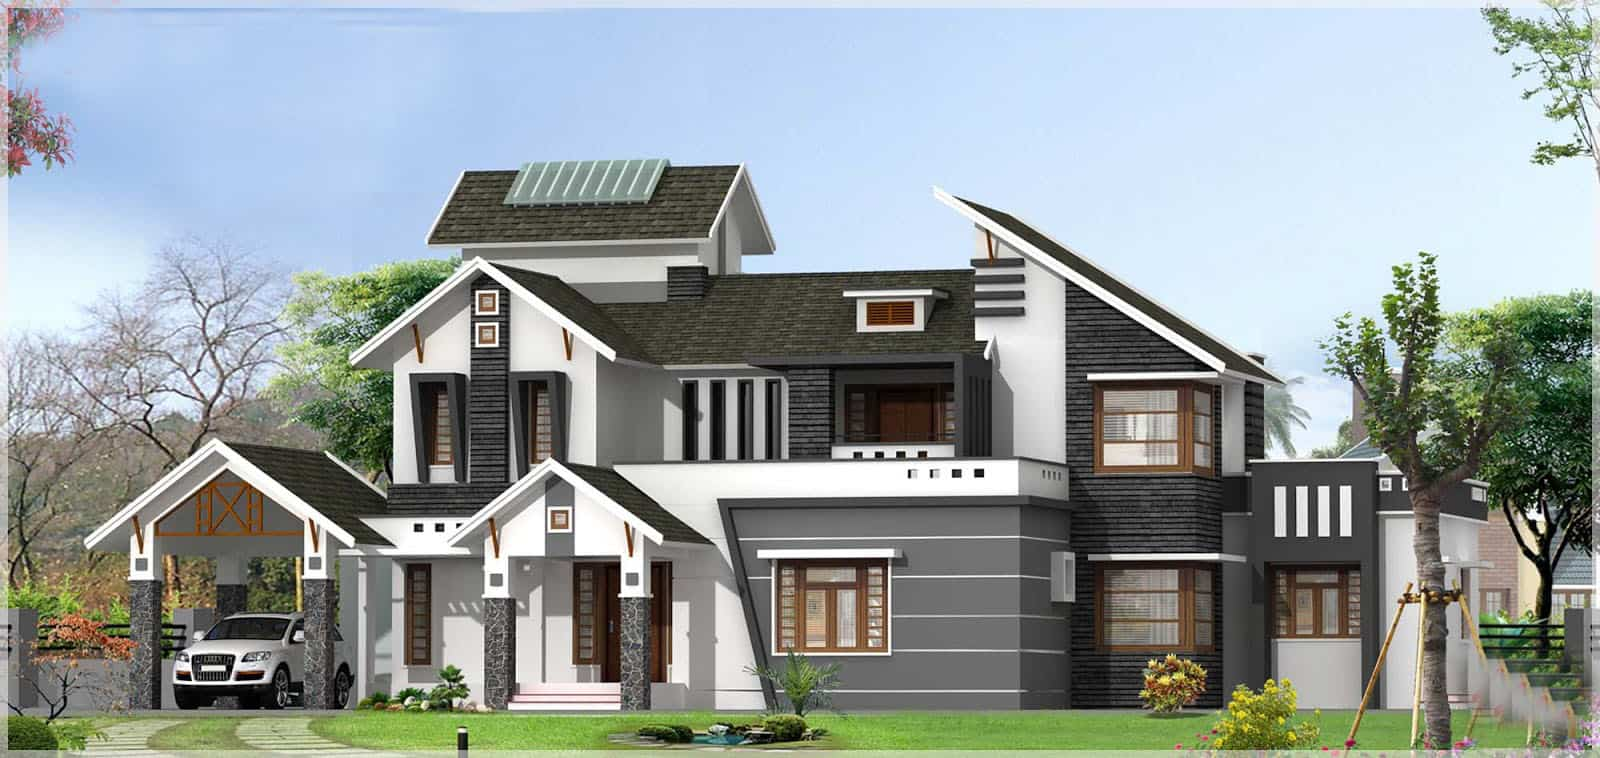 sloping roof kerala house design at 3136 with pergolas